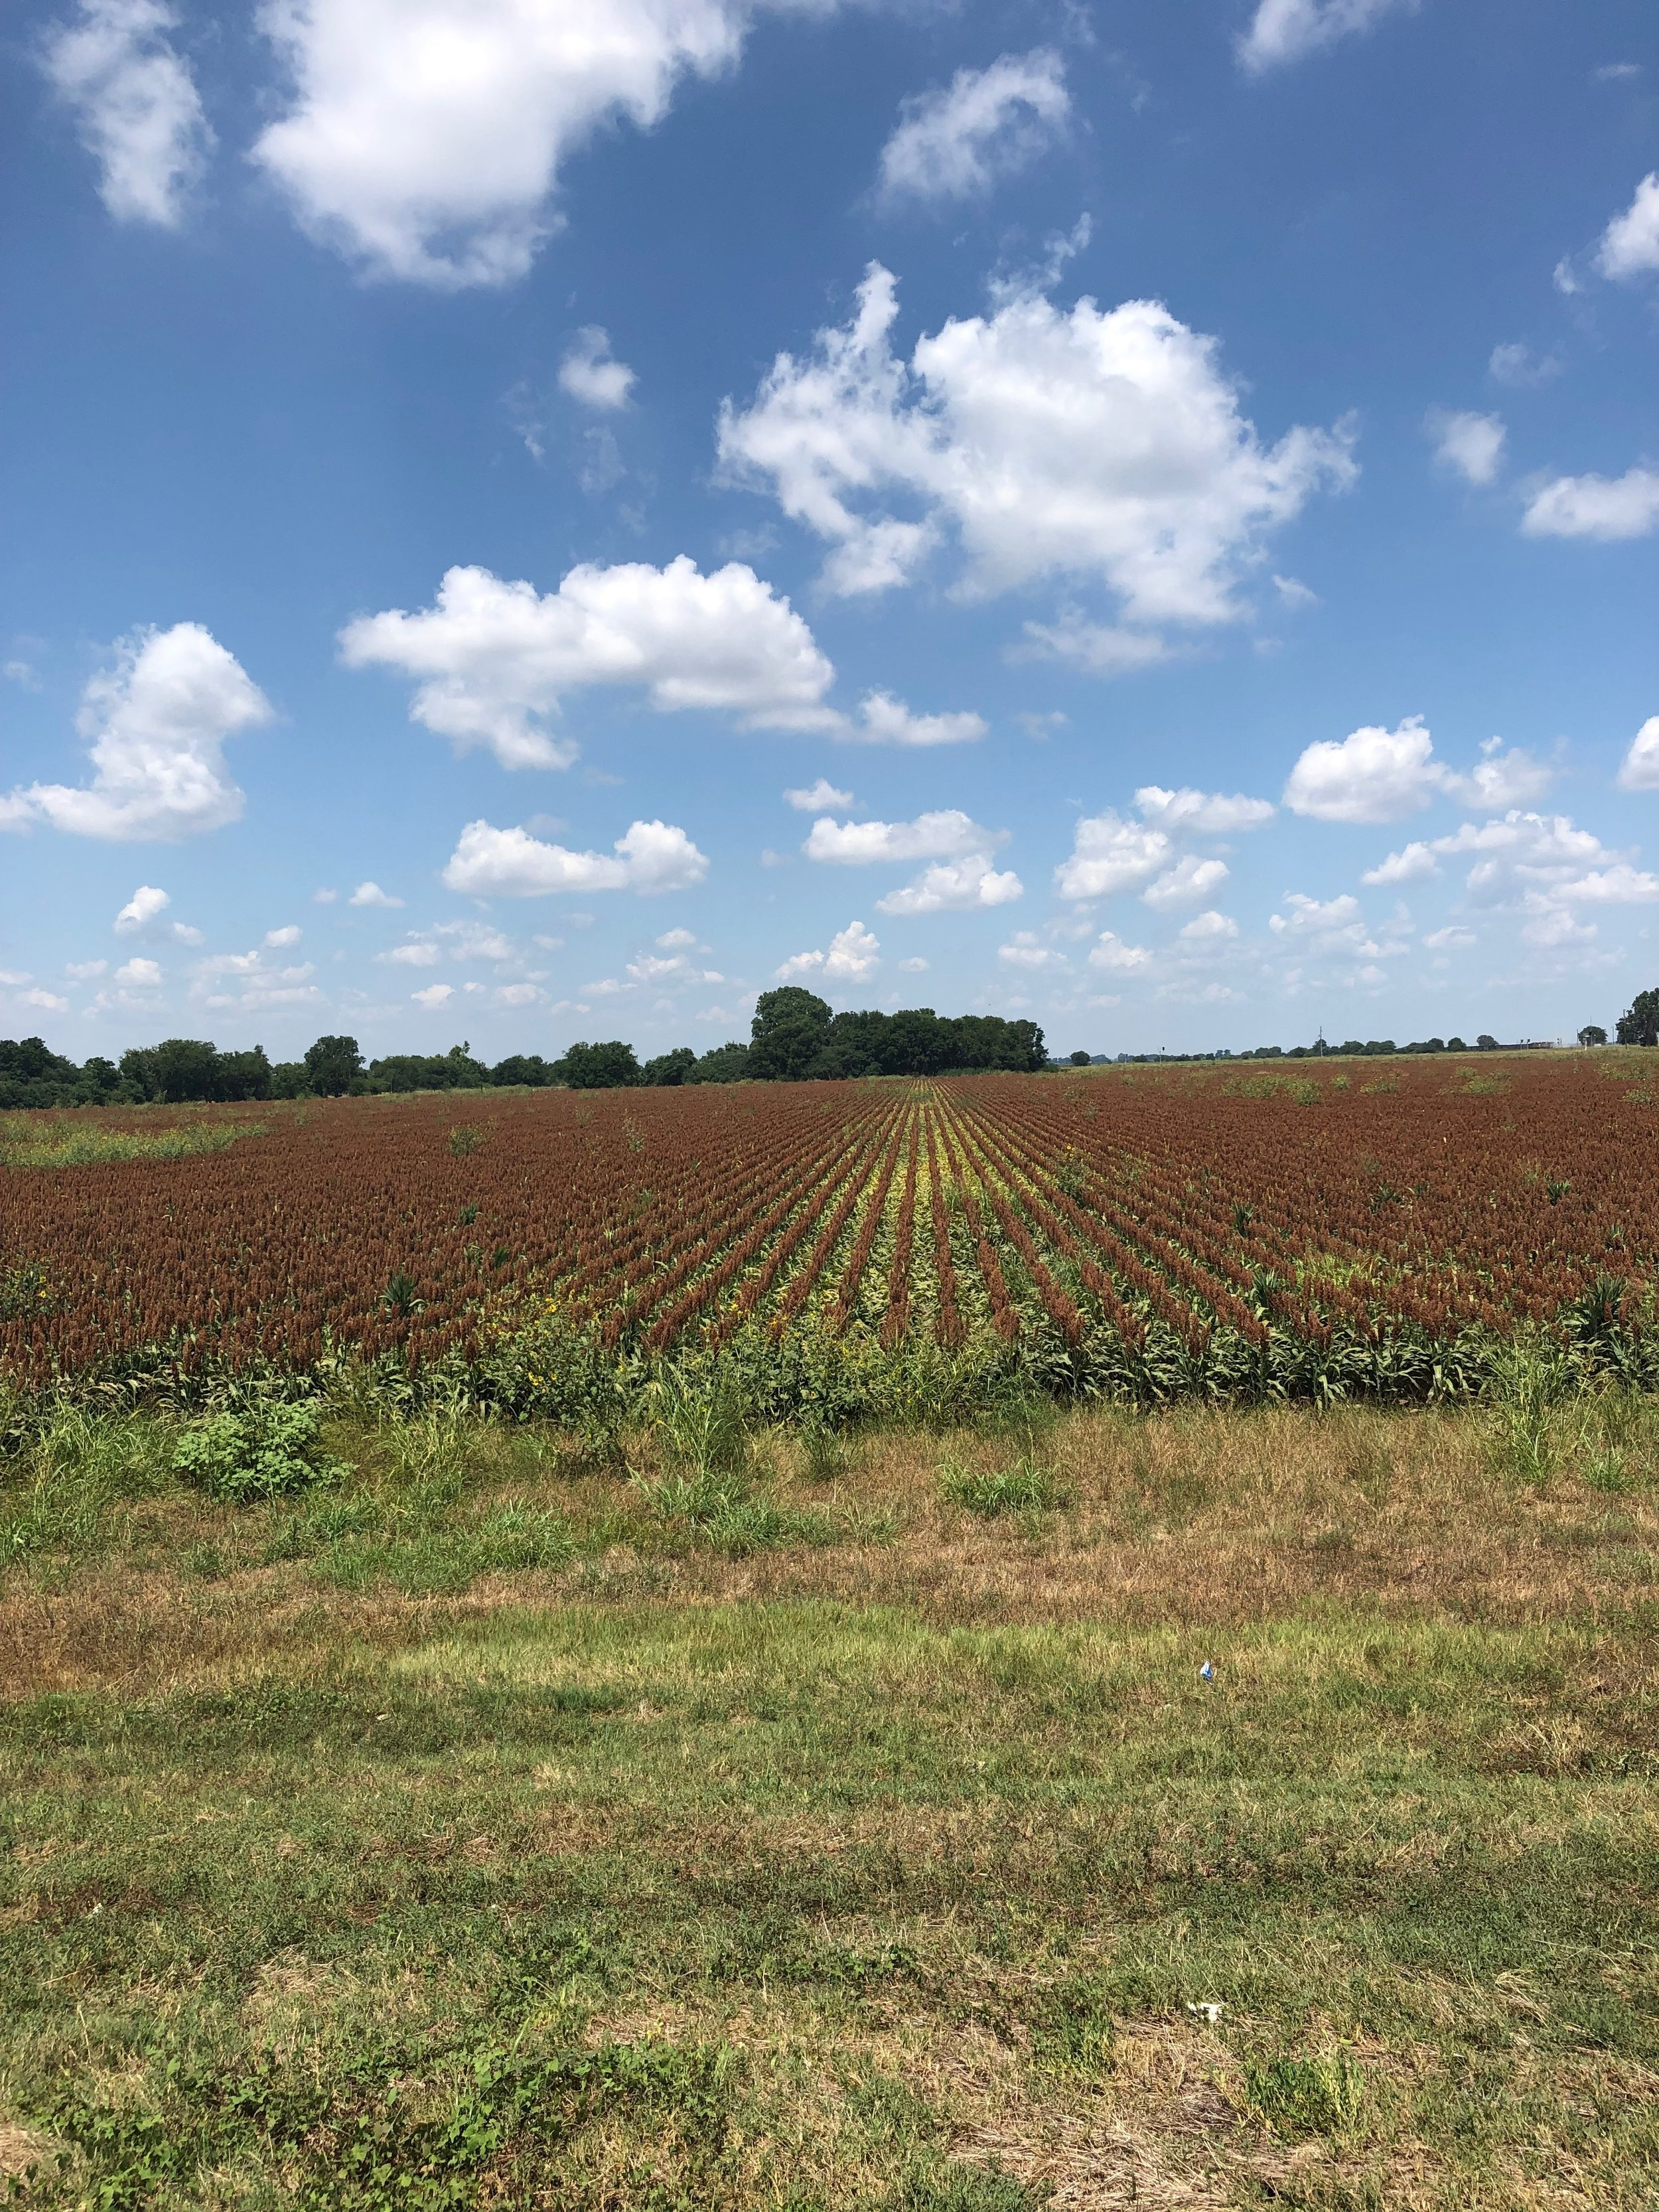 This is the view, a sorghum field on the West side of the scene!!